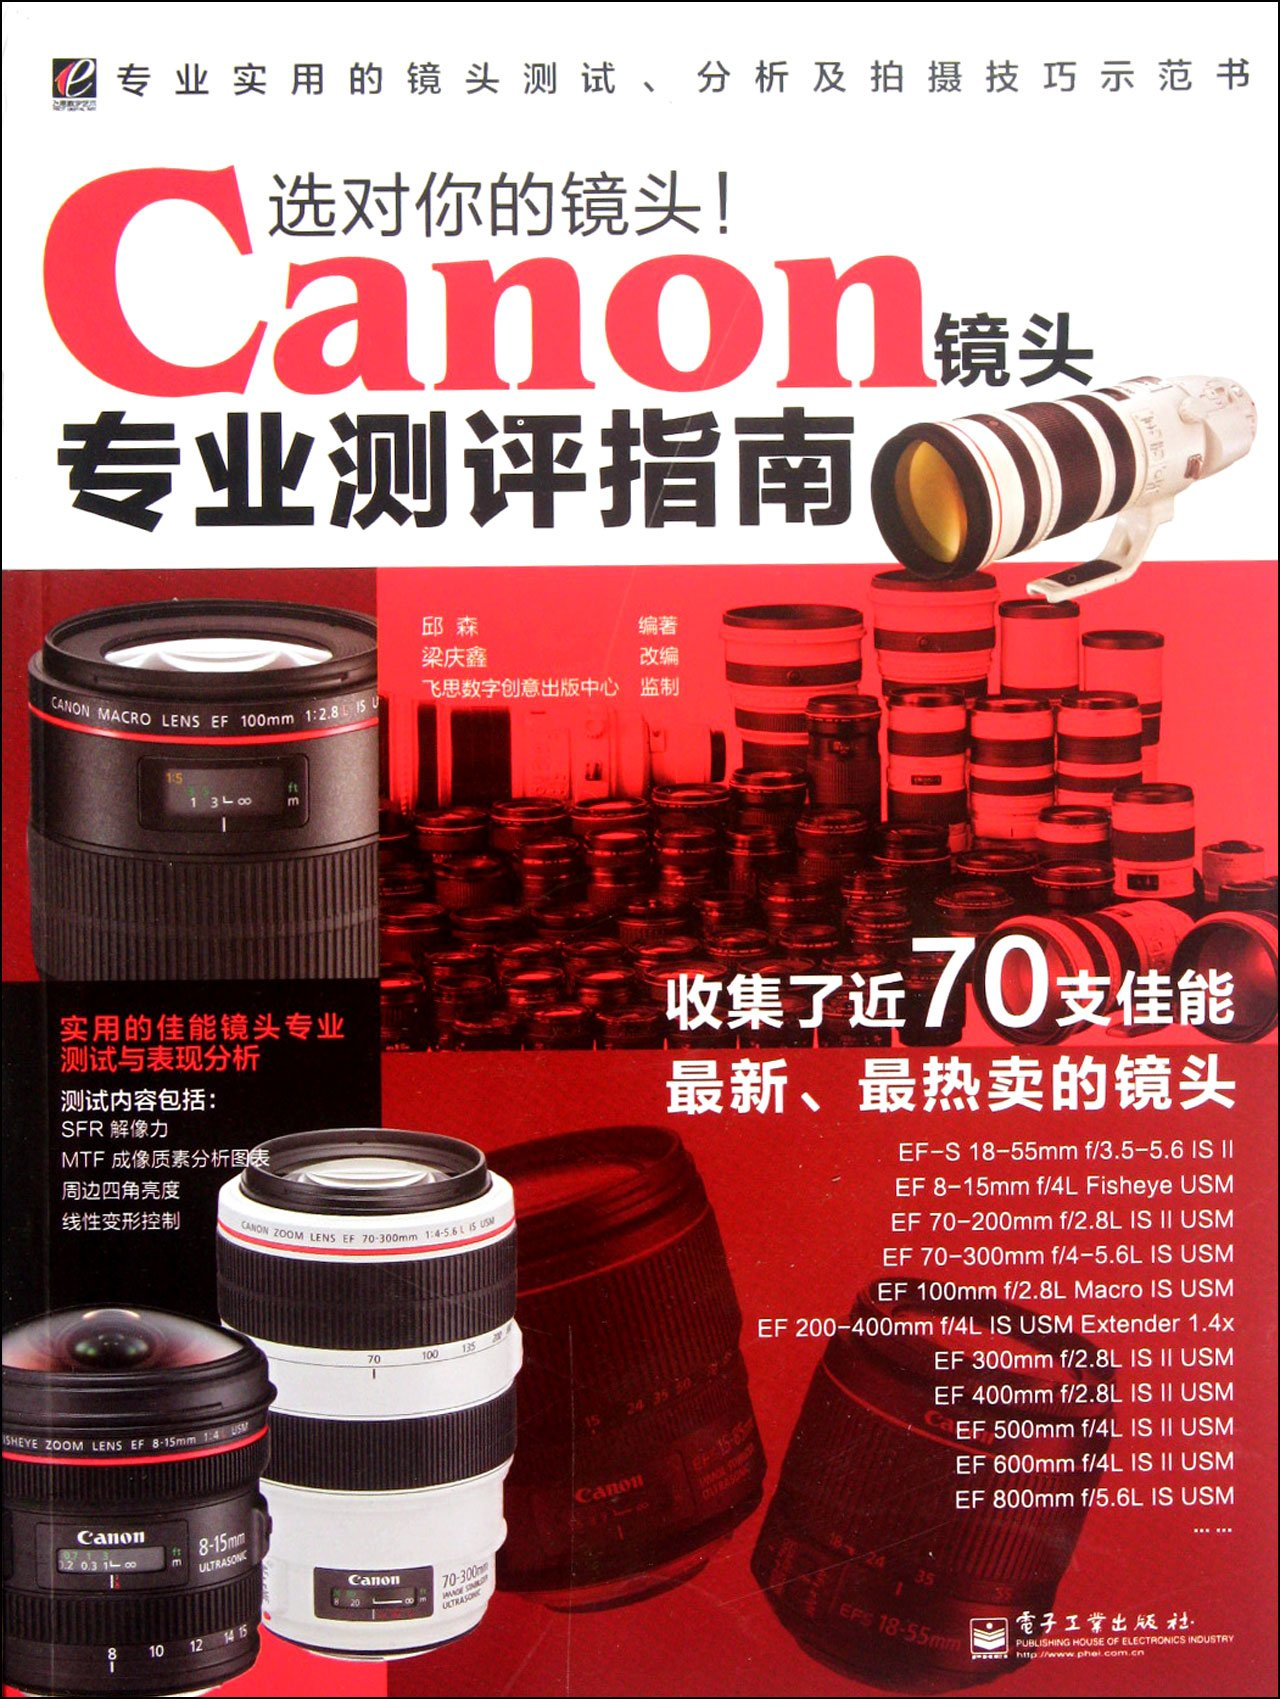 Read Online A Professional Guideline for Choosing Canon Camera Lens-Your Lens (Chinese Edition) PDF